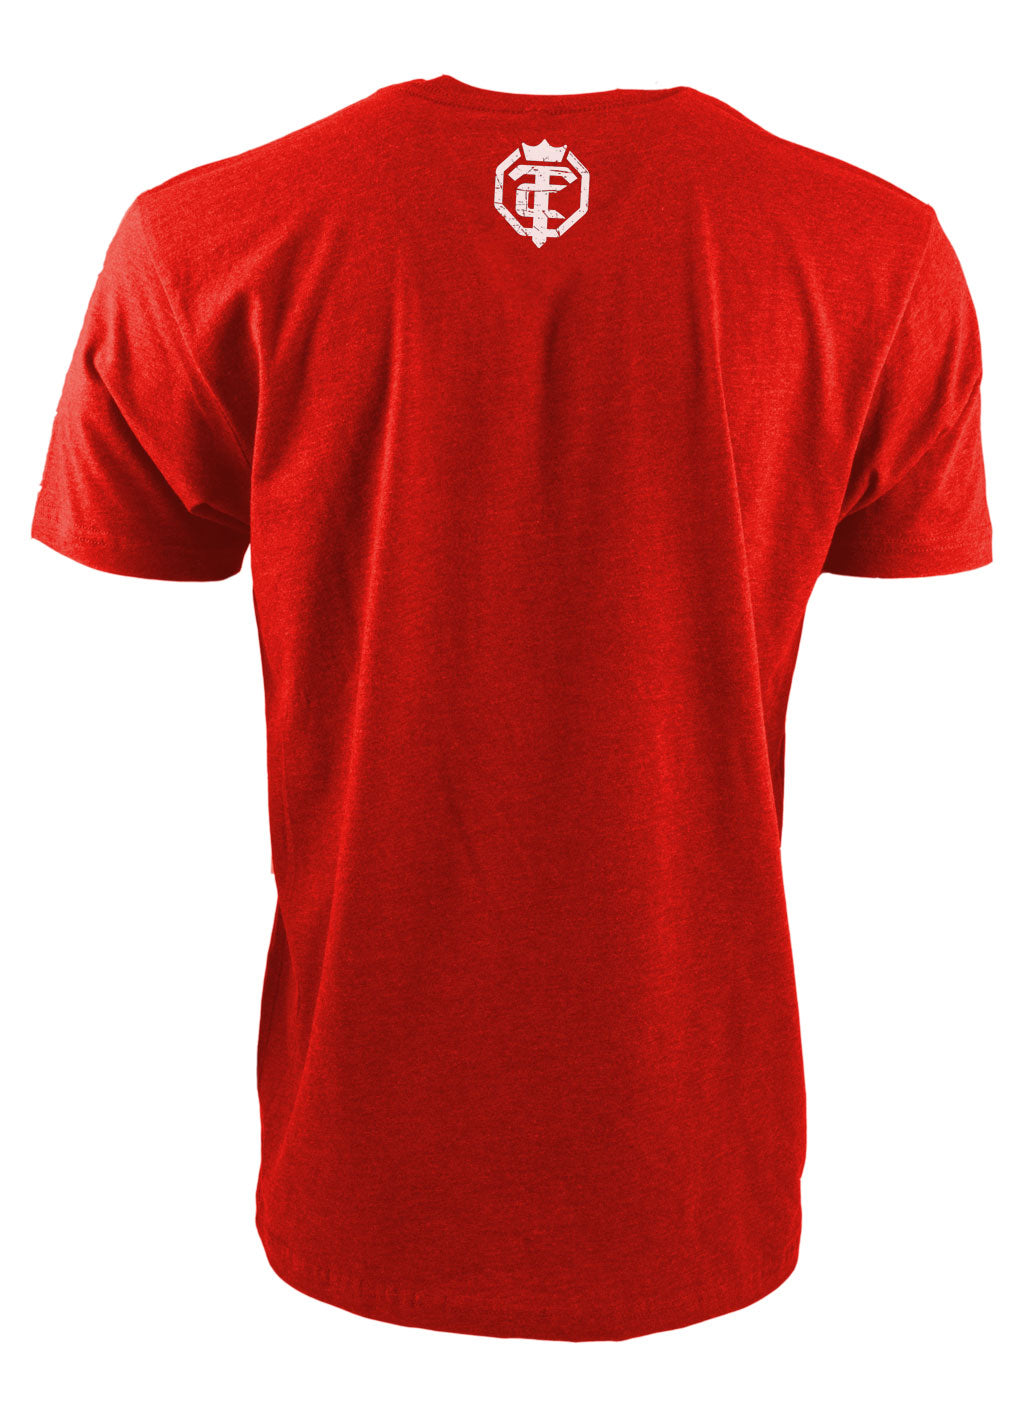 Open The Cage - Crimson Red Youth Tee